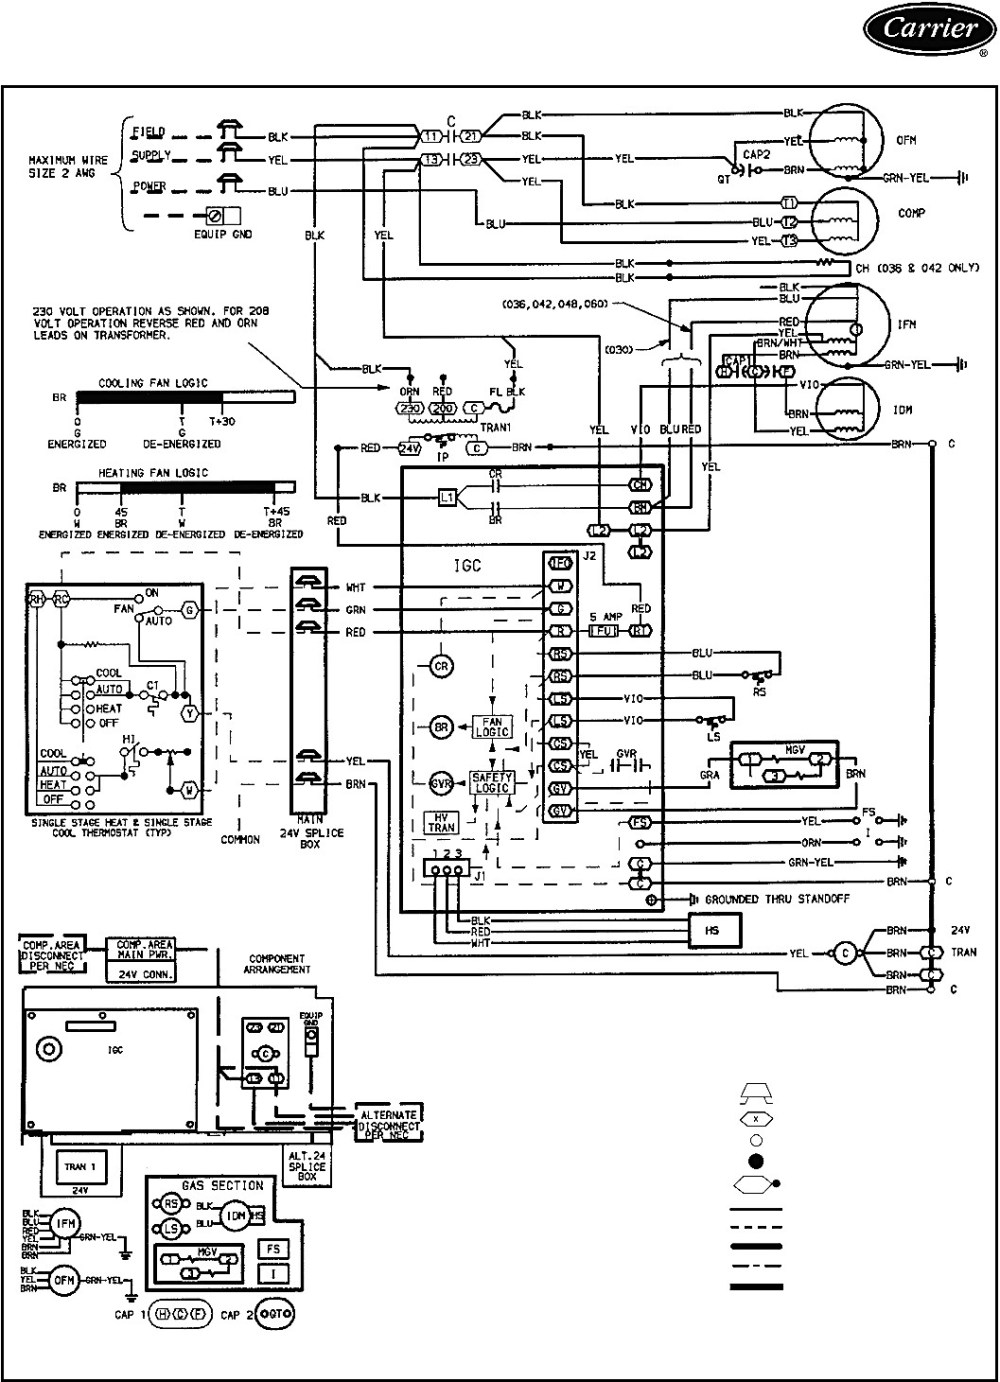 medium resolution of carrier humidifier wiring diagram schematic diagrams humidifier aprilaire 500 wiring diagram aprilaire 60 wiring diagram